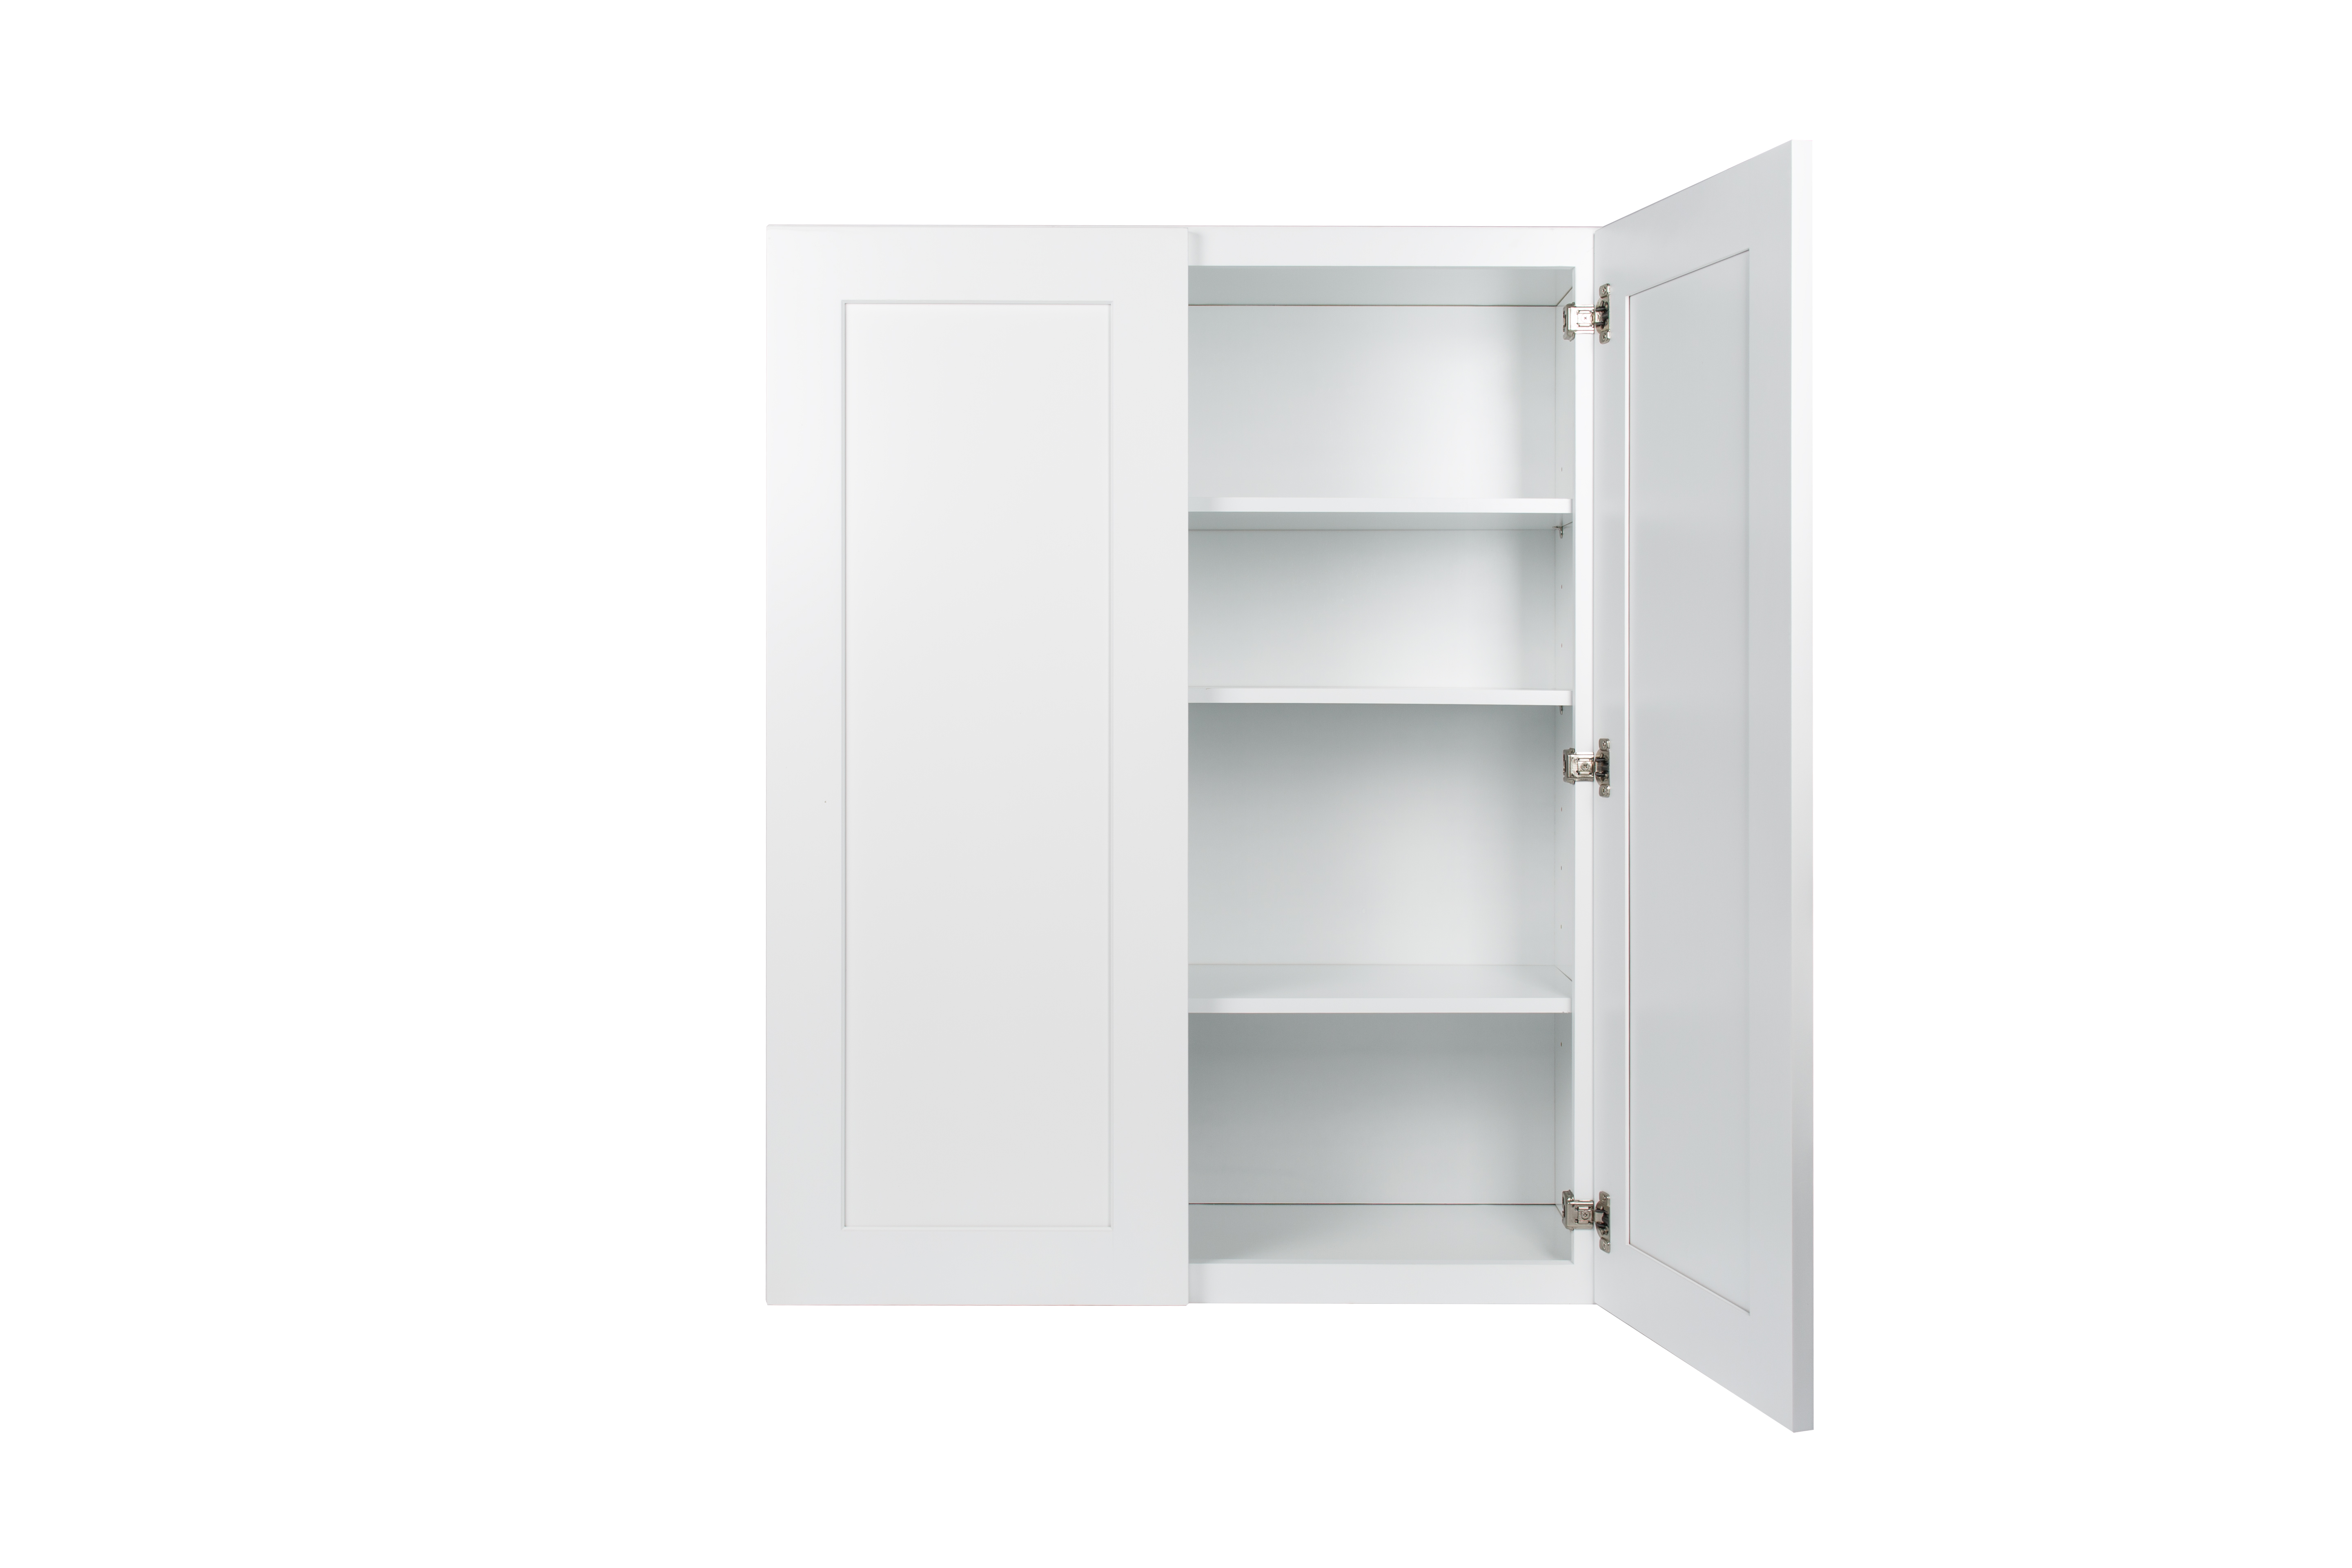 Ready to Assemble 30x36x12 in. Wall Cabinets with 2 Doors and Two Adjustable Shelves in Shaker White